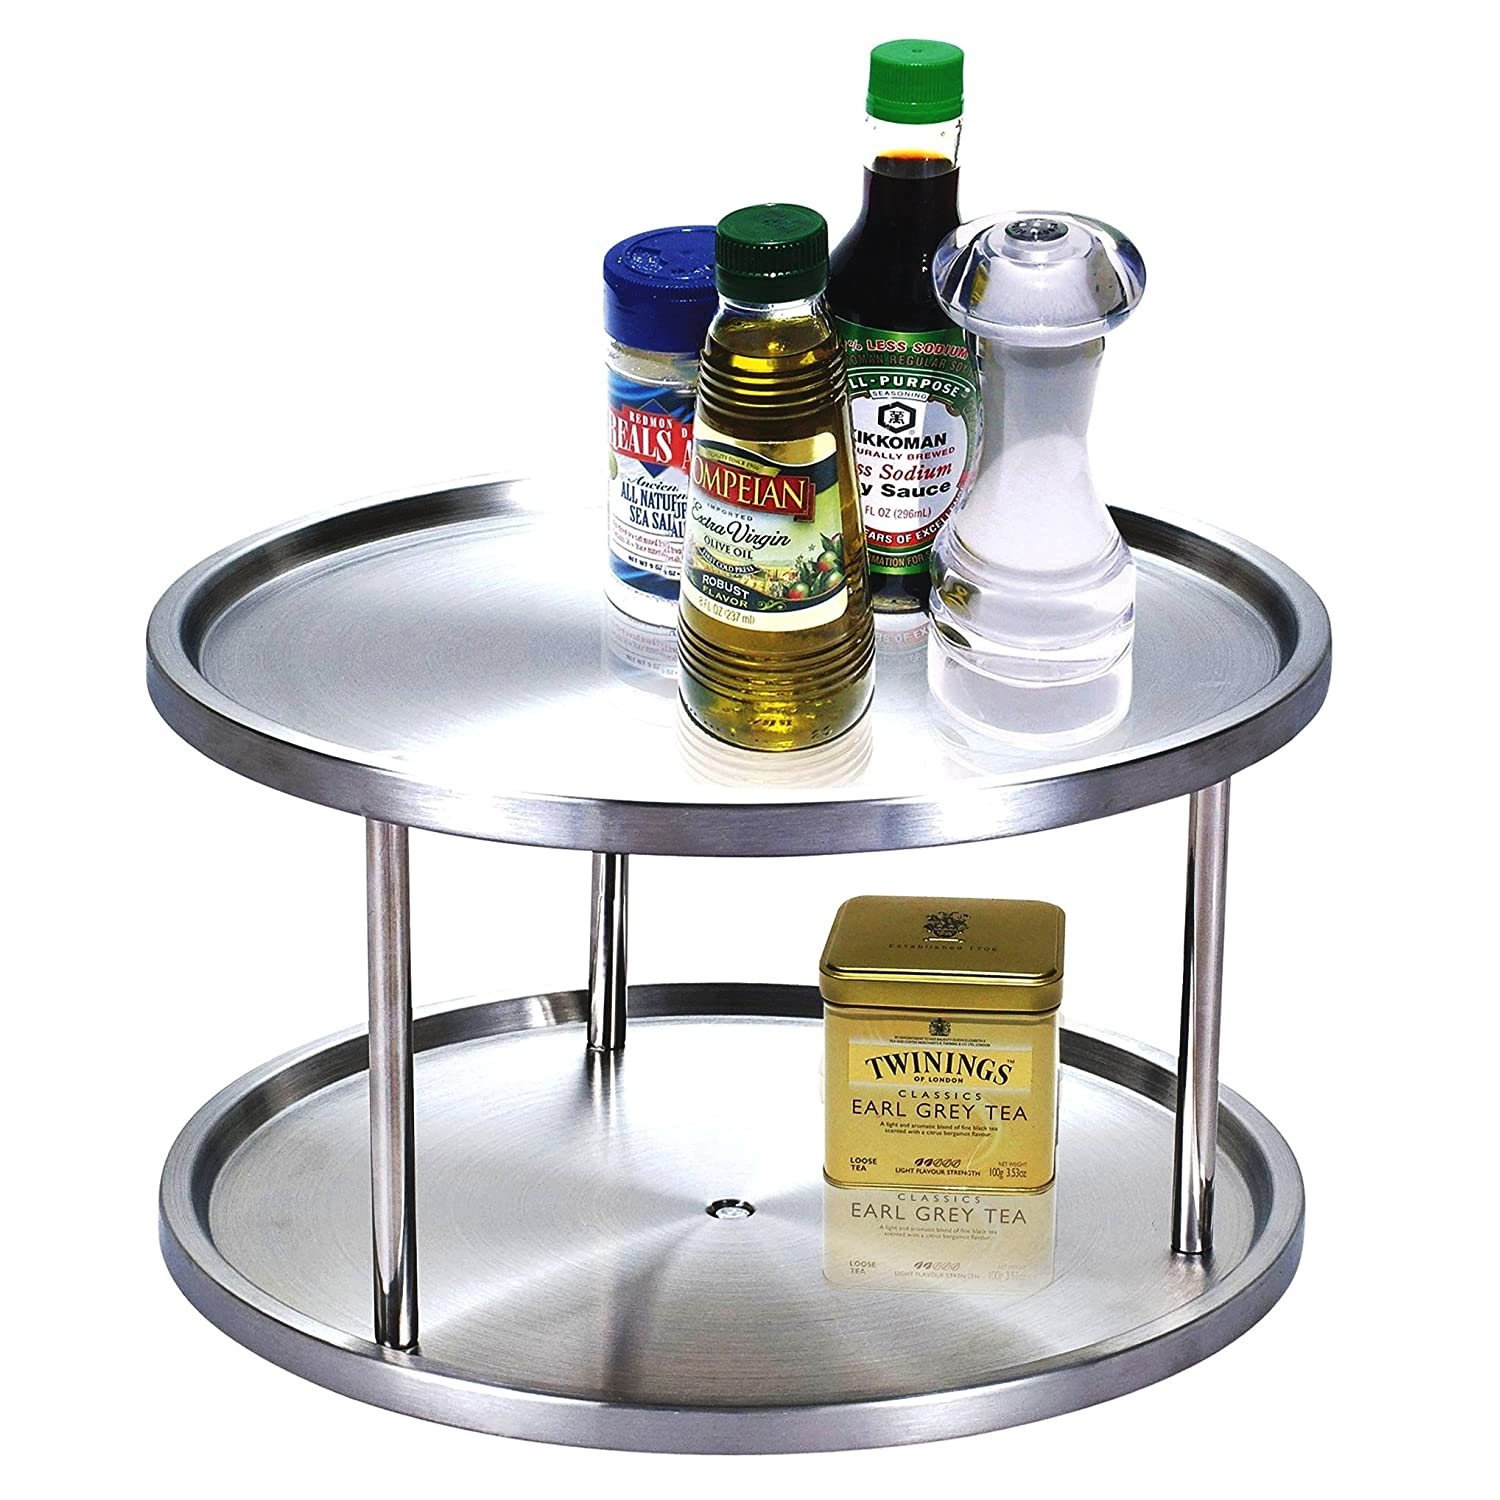 Cook N Home 10-1/2-Inch 2 Tier Lazy Susan - This handy 2 tier lazy Susan is 360-Degree turntable ideal for cabinets or counters